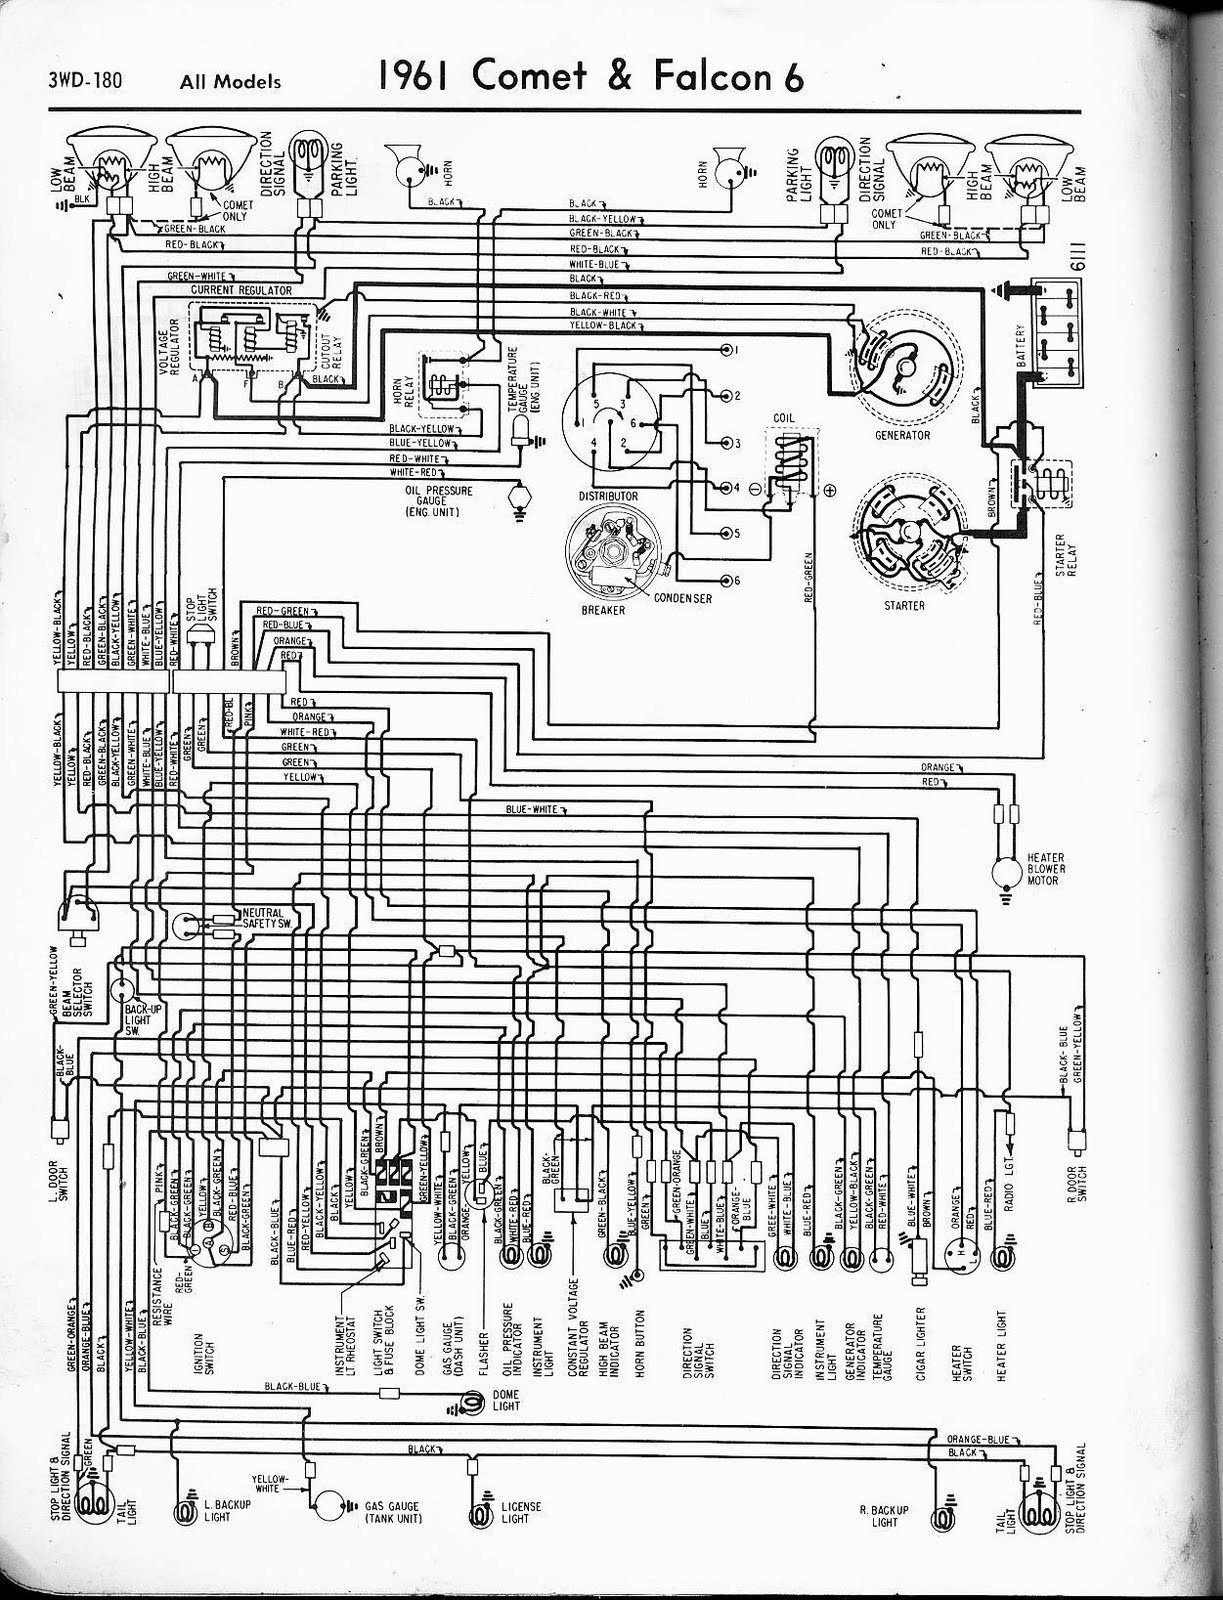 1961 ford f100 wiring diagram for color car wiring diagrams rh justinmyers co 1965 ford f100 steering column wiring diagram 1965 ford f100 steering column wiring diagram